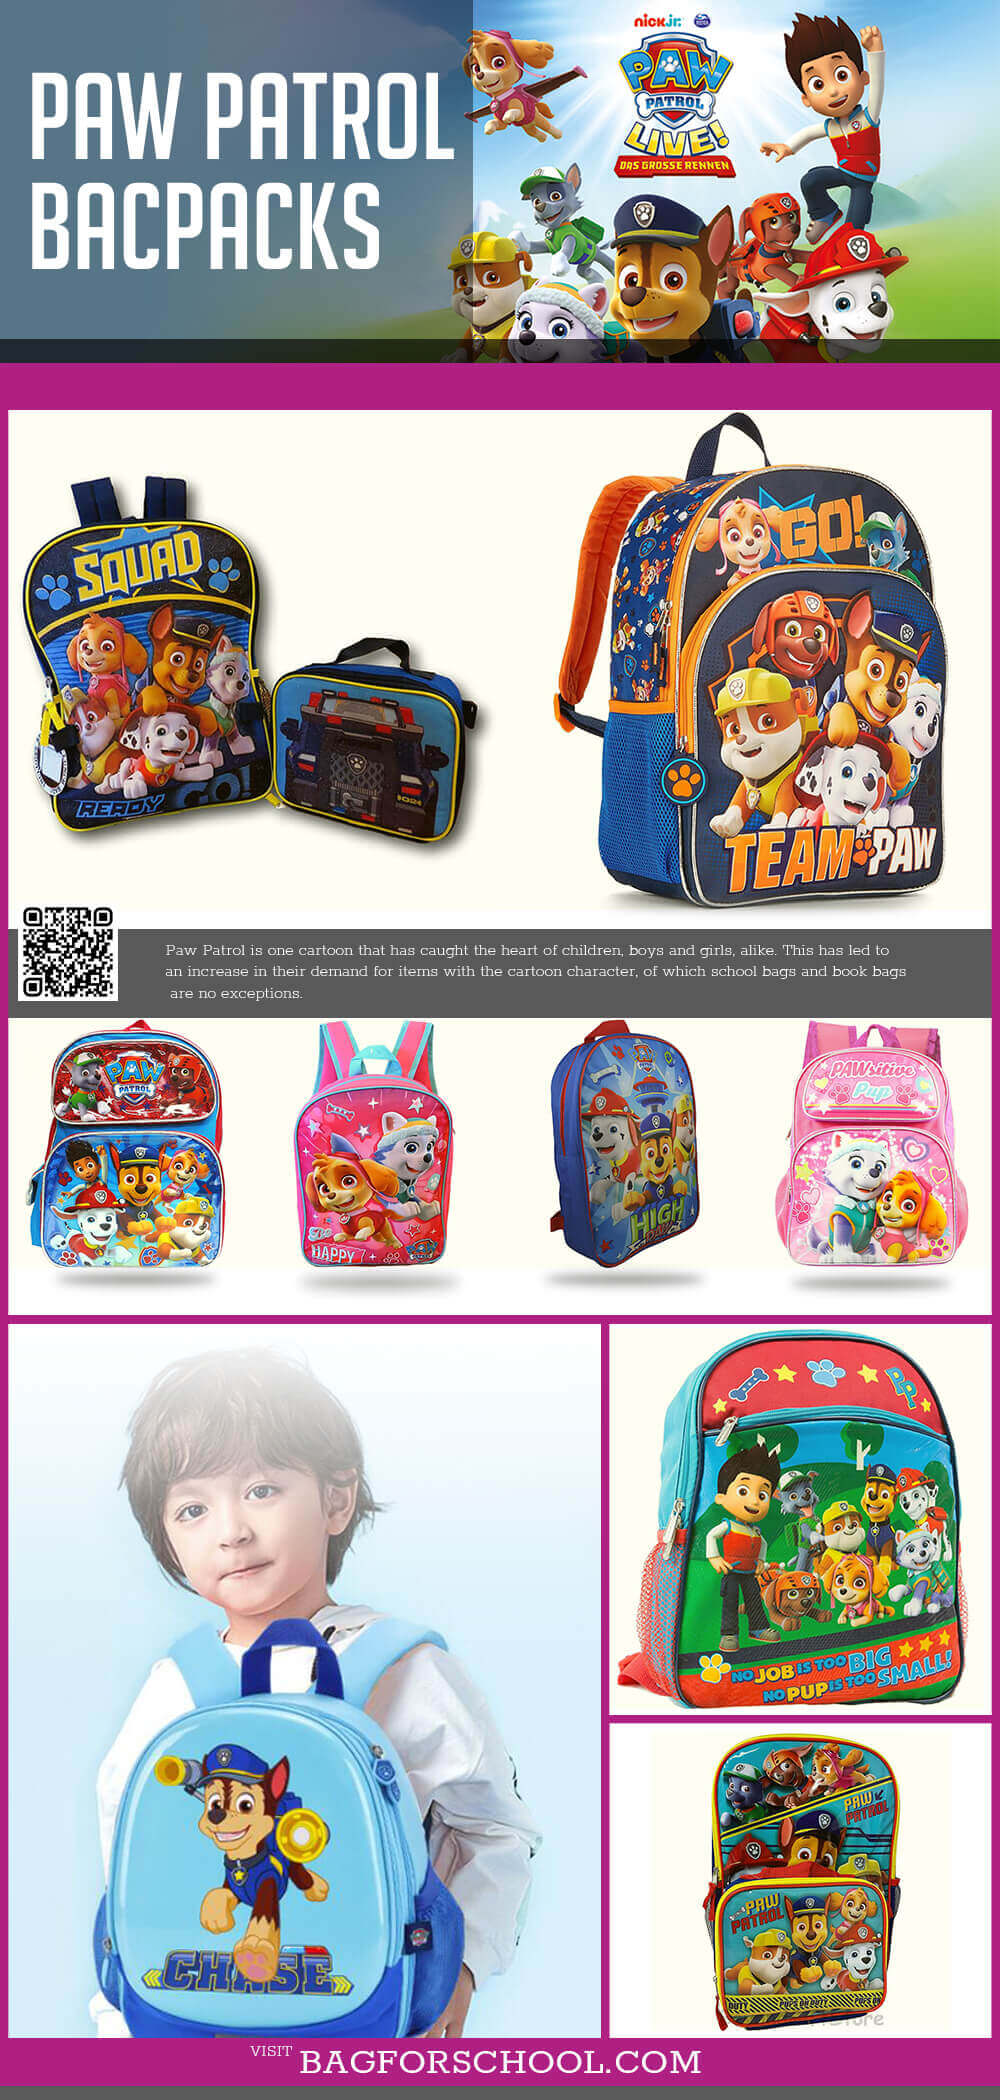 Paw Patrol Backpacks For Boys And Girls